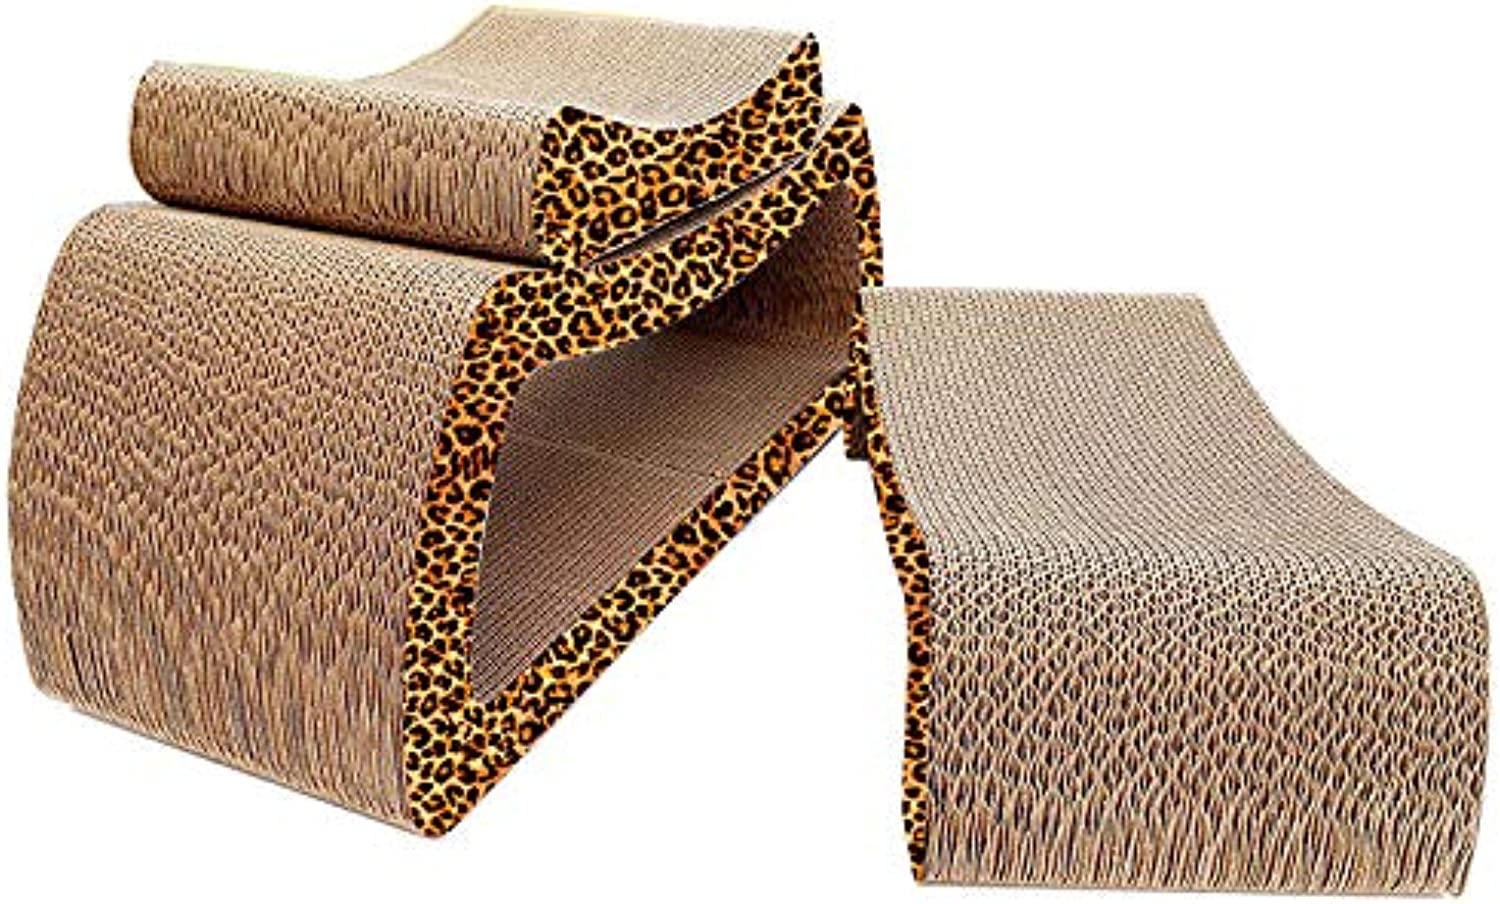 Cat Scratch Board Large Sofa Corrugated Paper Big Cat Grinding Claws Play Rest Cat with 60 cm Suitable for Medium and Large Cats 3 Pieces Combined,leopardprint,60  23  24cm